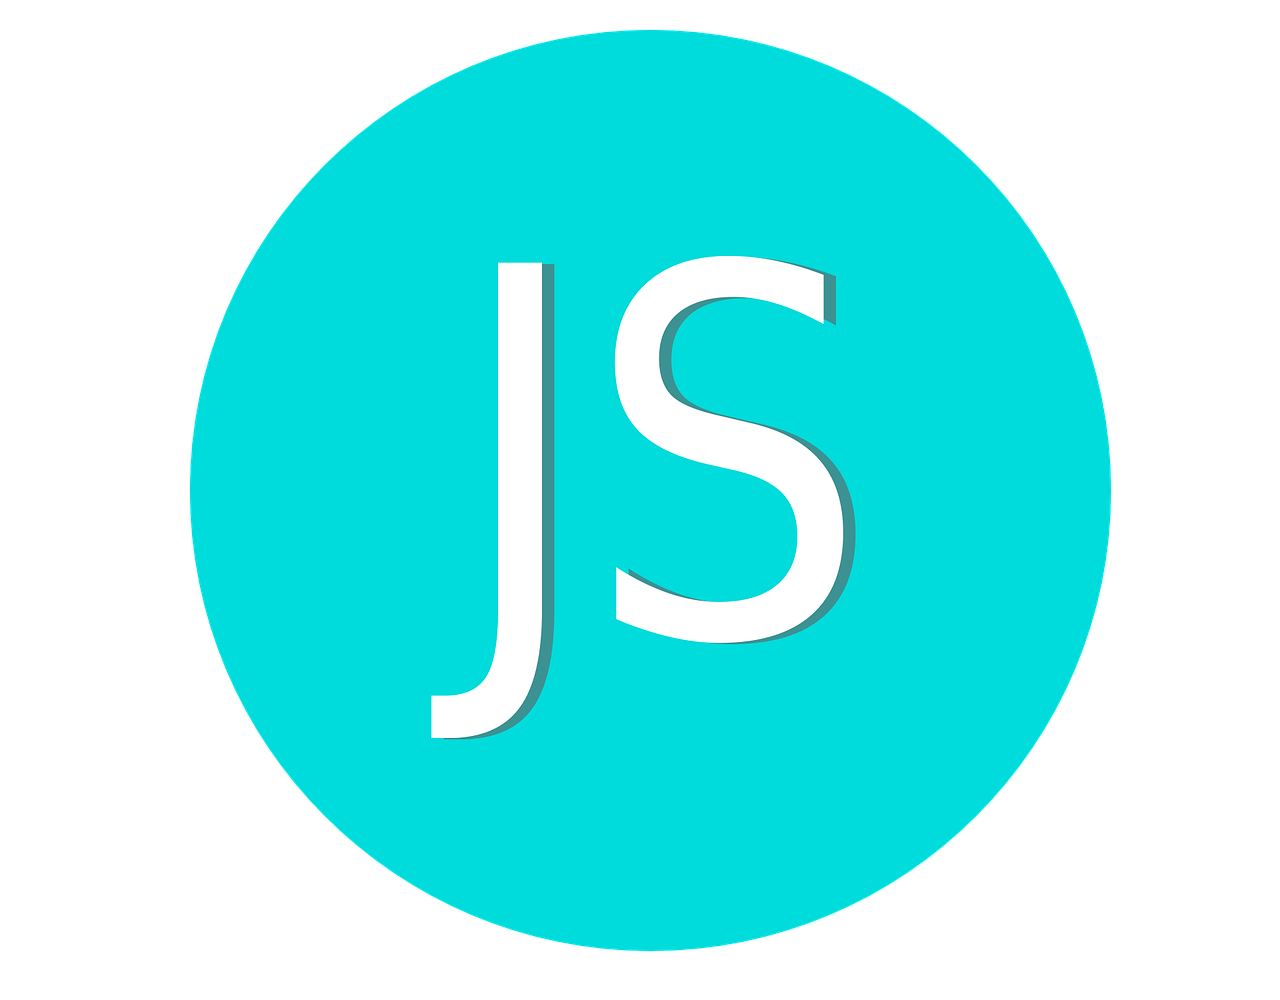 JS technology